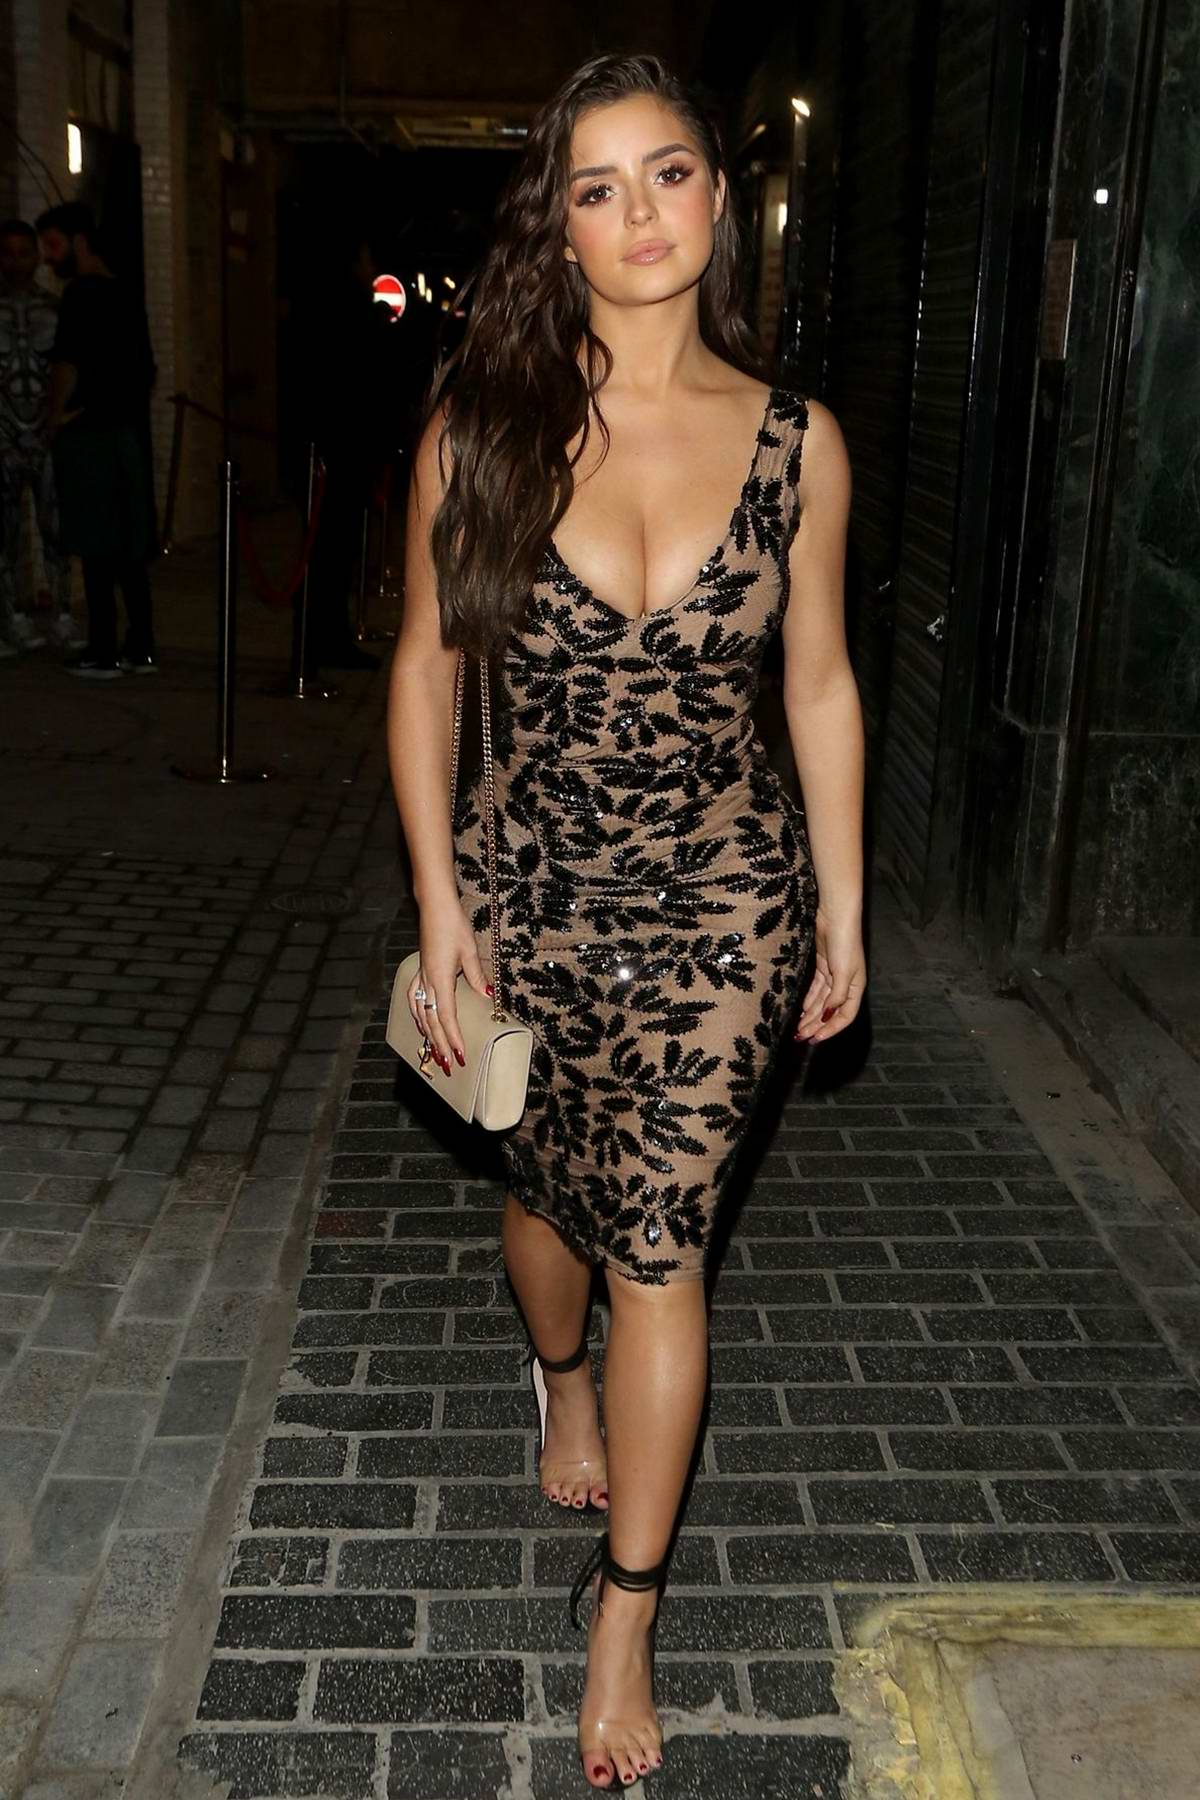 Demi Rose stuns in a form-fitting dress while out to celebrate her 24th birthday in London, UK